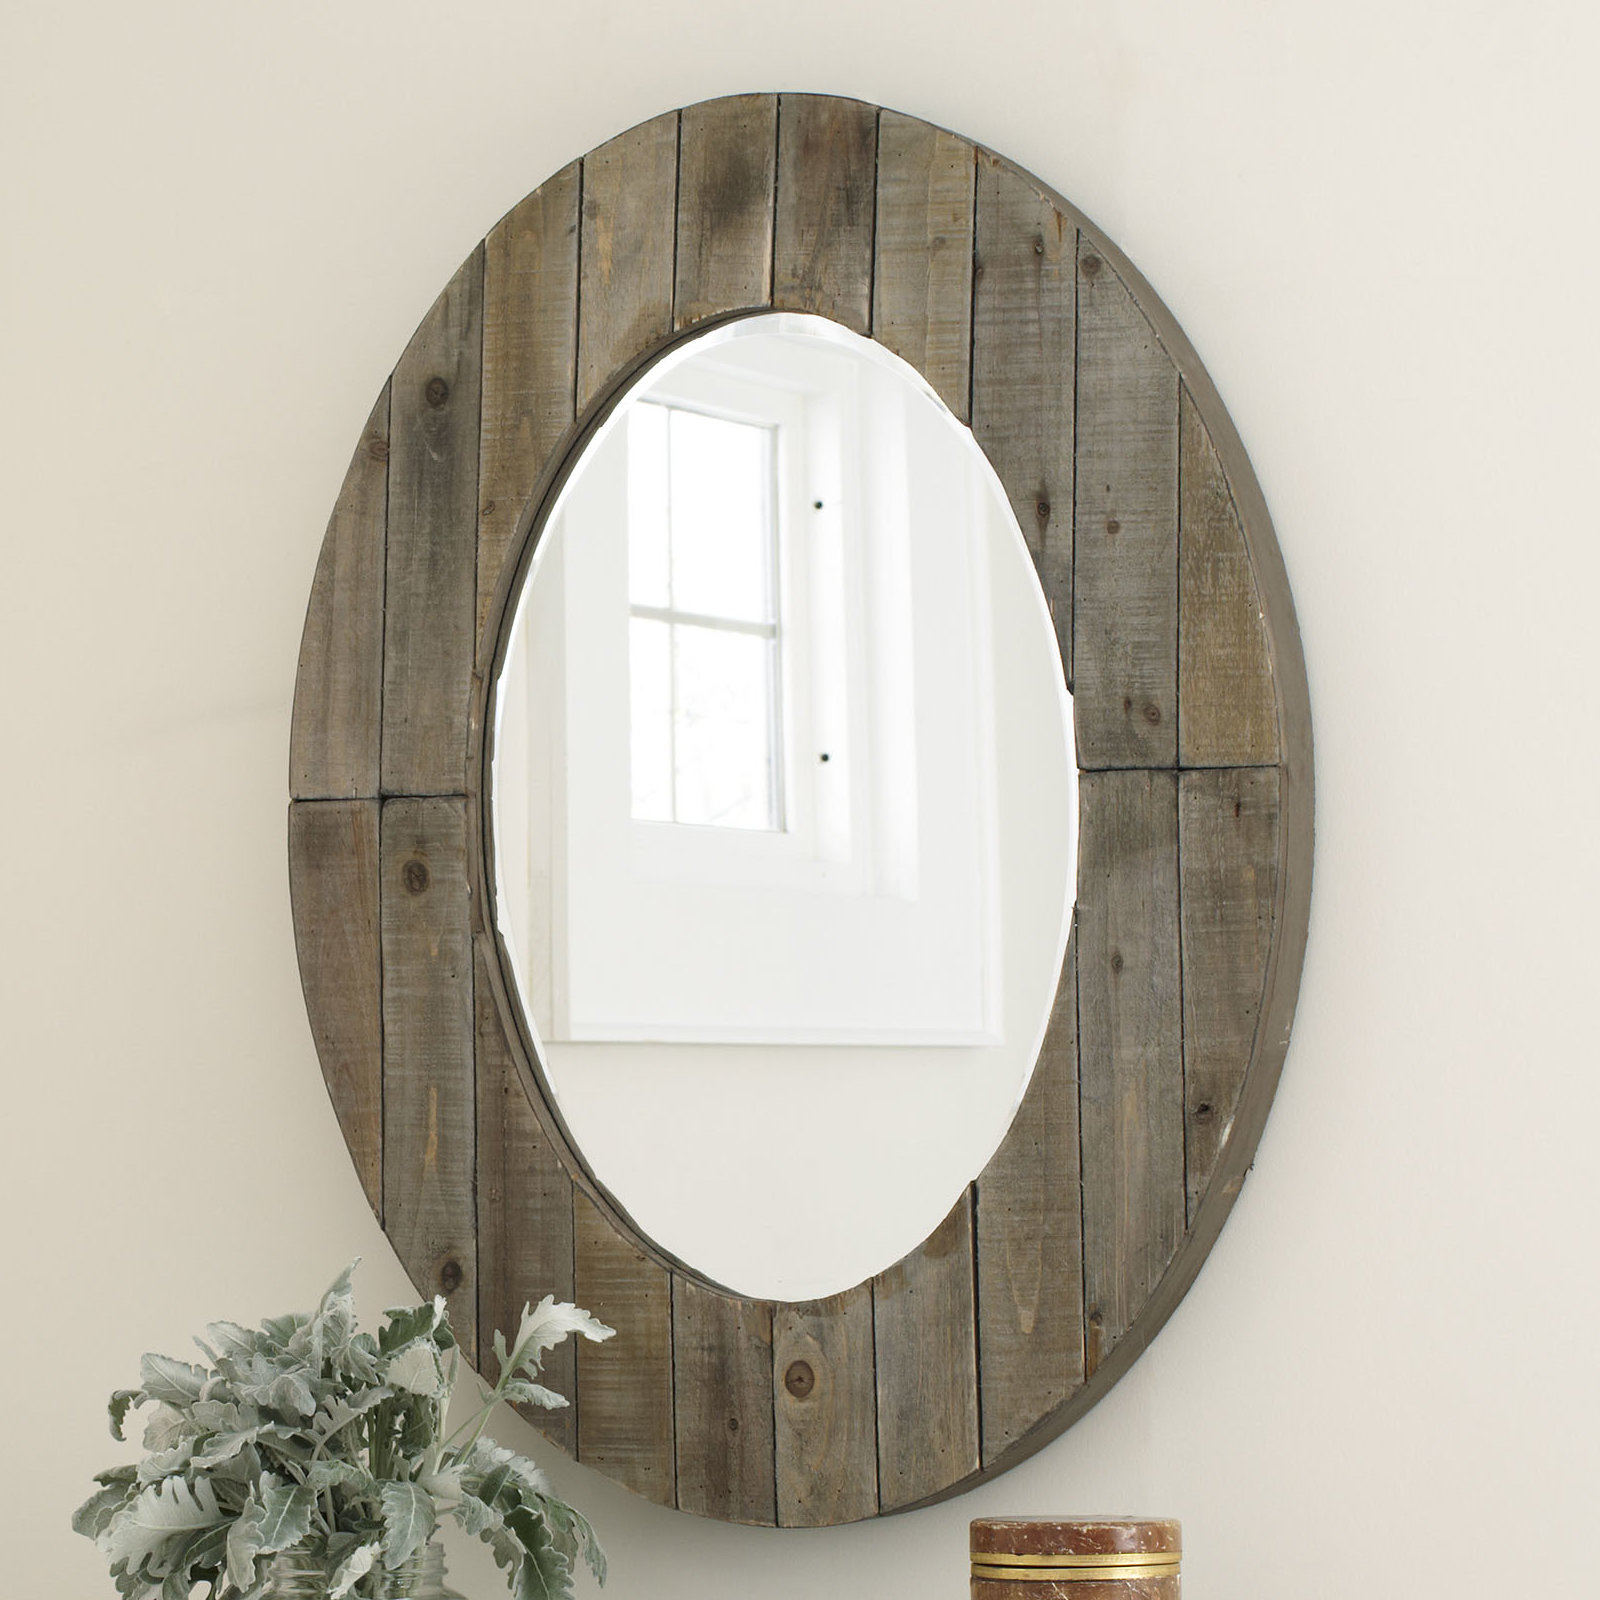 Farmhouse & Rustic Gracie Oaks Wall & Accent Mirrors | Birch Inside Kinley Accent Mirrors (Image 3 of 20)